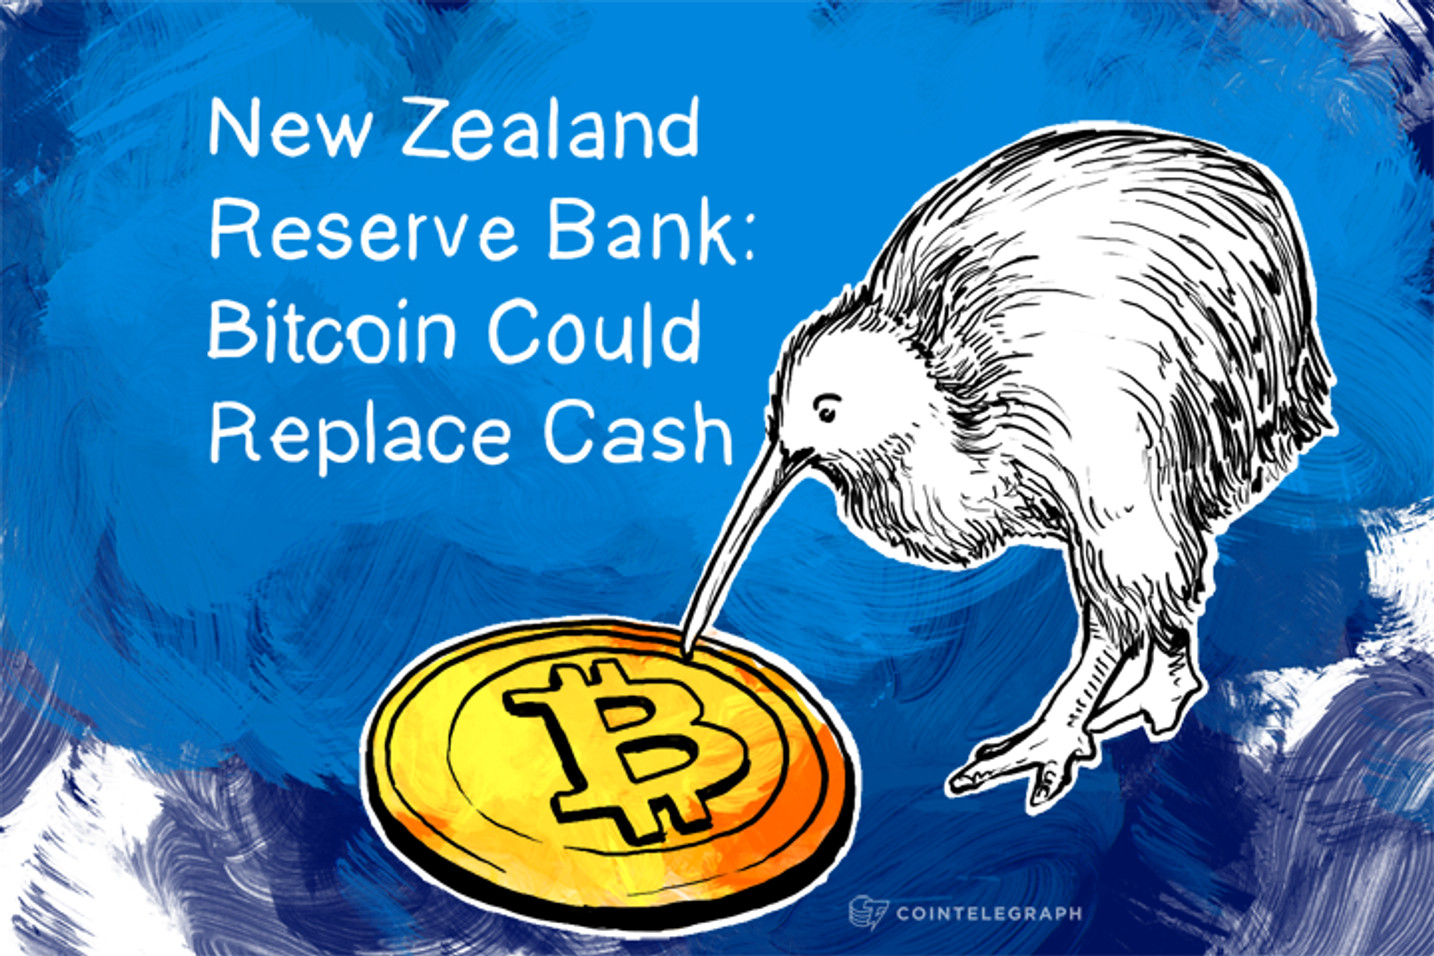 New Zealand Reserve Bank: Bitcoin Could Replace Cash